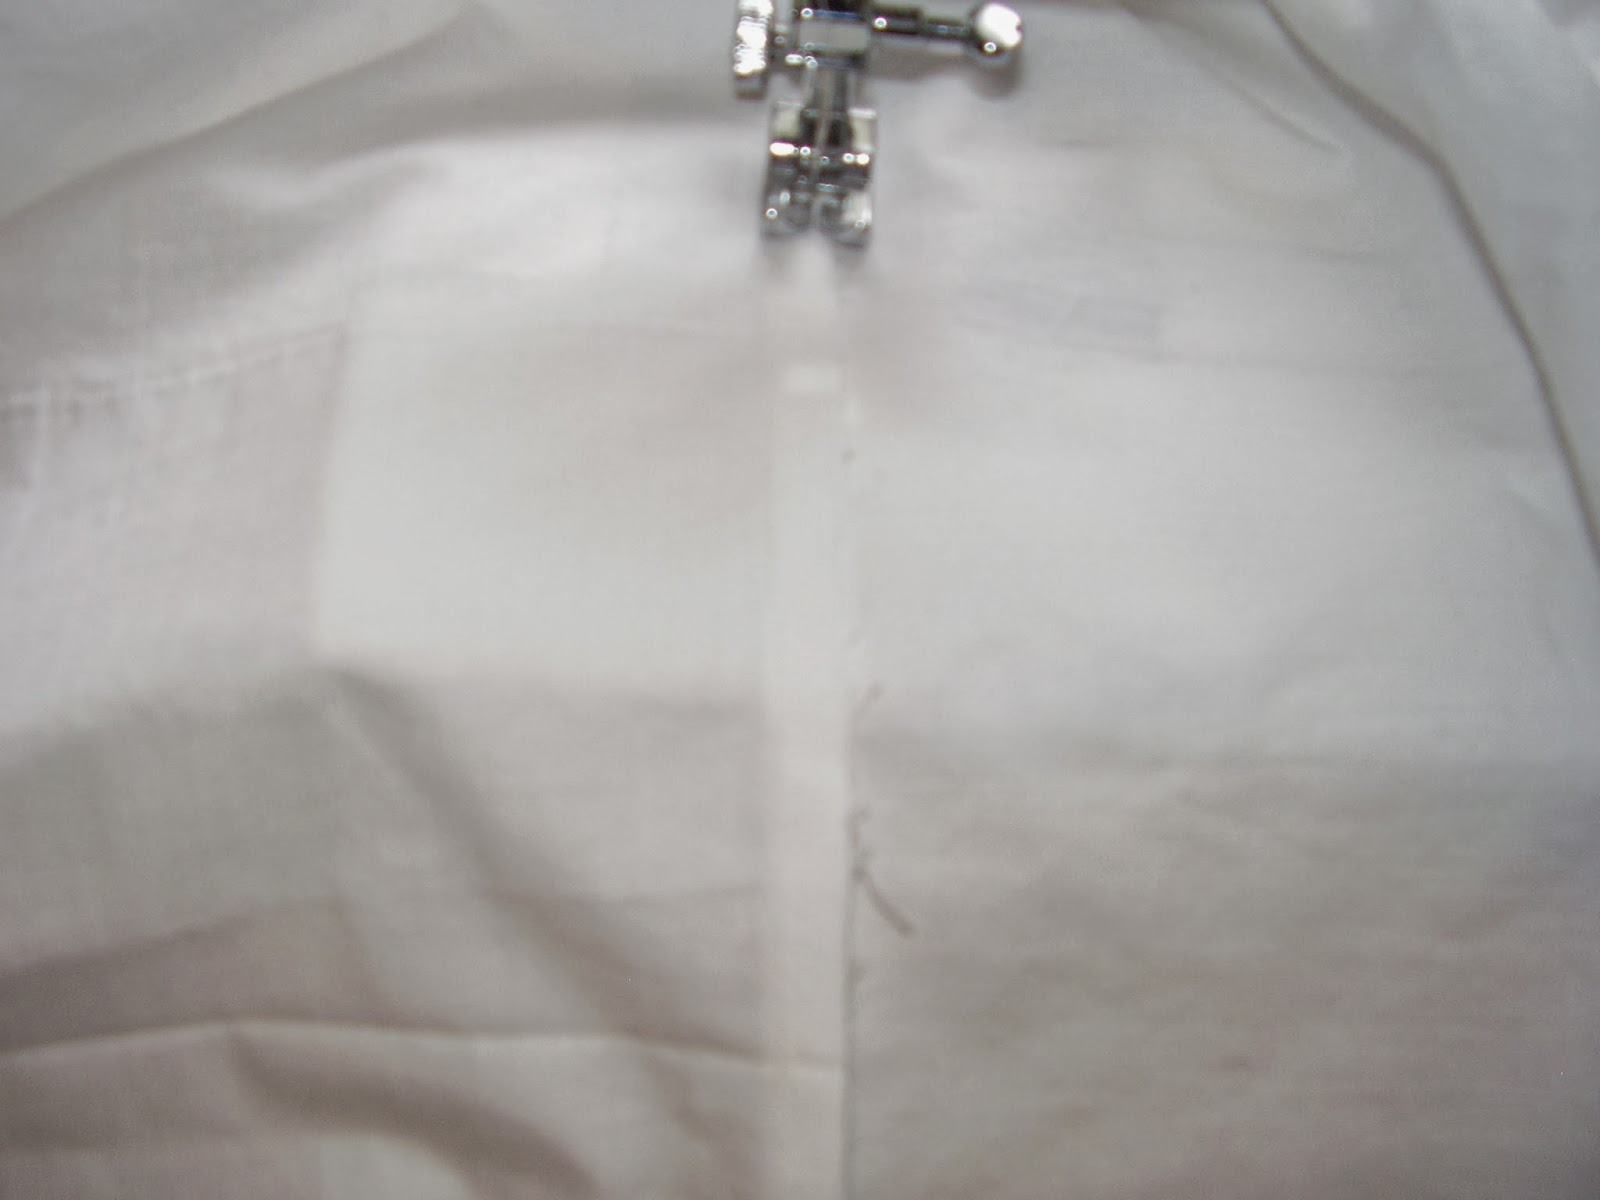 Felling seams on a sewing machine.